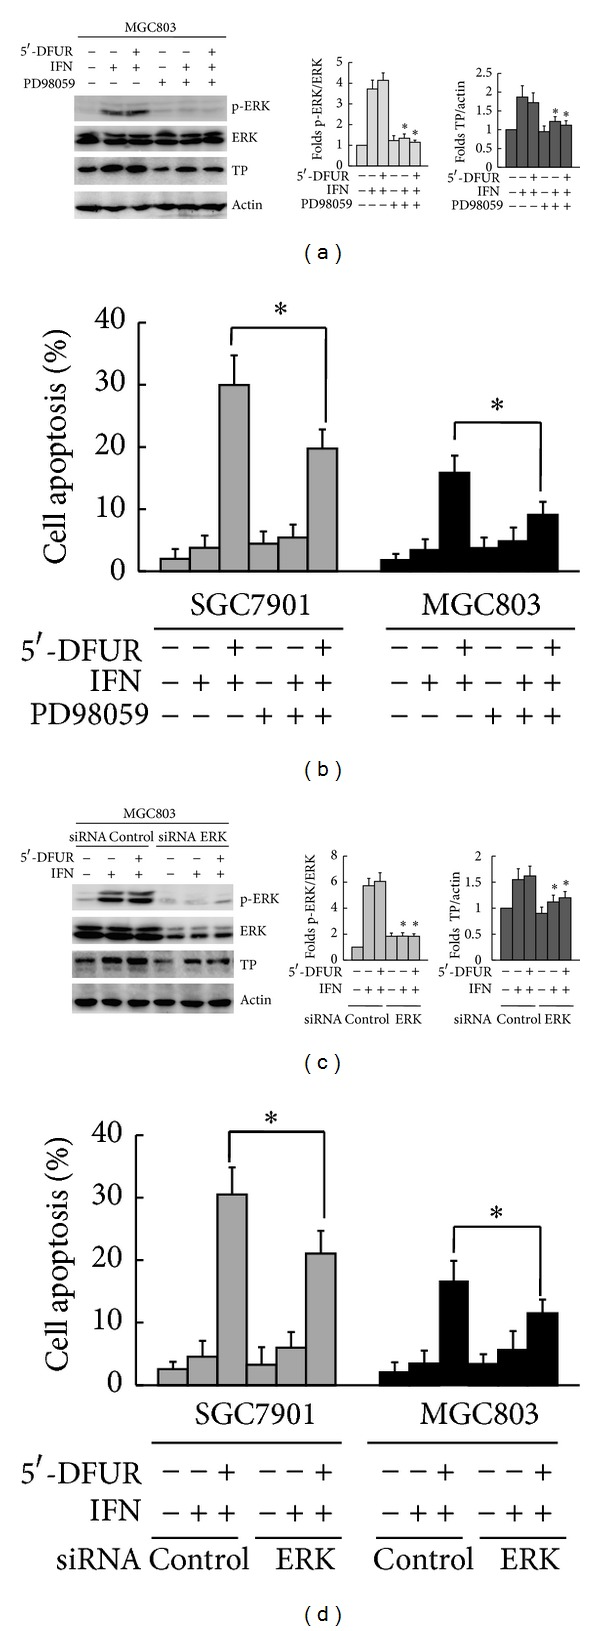 IFN- α upregulated the expression of TP partially by promoting ERK activation in gastric cancer cells. (a) MGC803 cells were preincubated with 20 μ mol/L ERK inhibitor PD98059 for 1 h followed by treatment with 1000 IU/mL of IFN- α or the combination of 1000 IU/mL IFN- α and 250 μ g/mL 5′-DFUR. Western blot analysis of the activated levels of ERK and the expression of TP. Data were means ± SD of three independent experiments. *Pretreated with PD98059 before IFN- α alone or IFN- α +5′-DFUR versus that untreated with PD98059 before IFN- α alone or IFN- α + 5′-DFUR, respectively, P